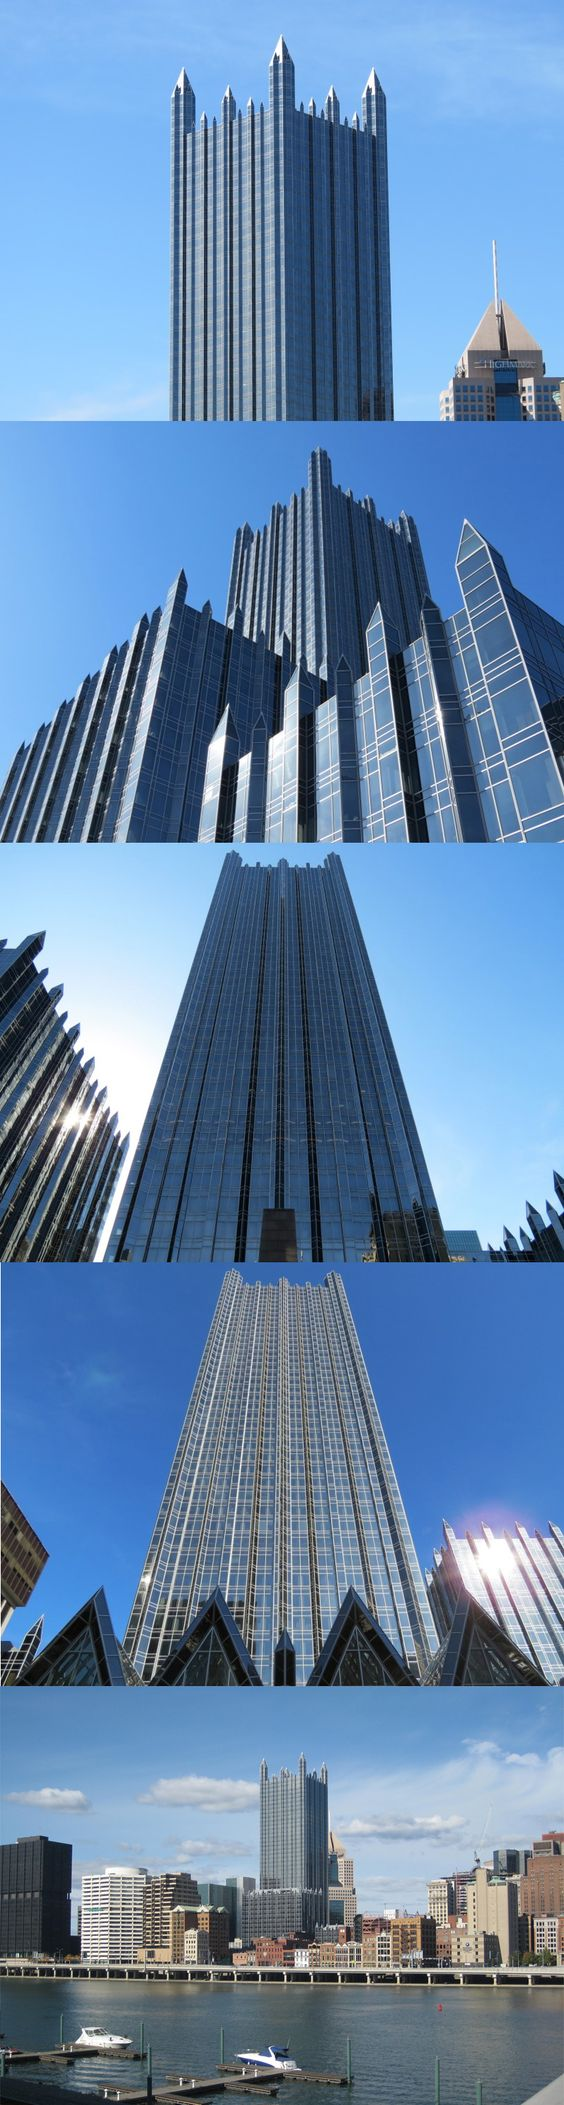 PPG Place, Pittsburgh, Philip Johnson & John Burgee, 1981-84